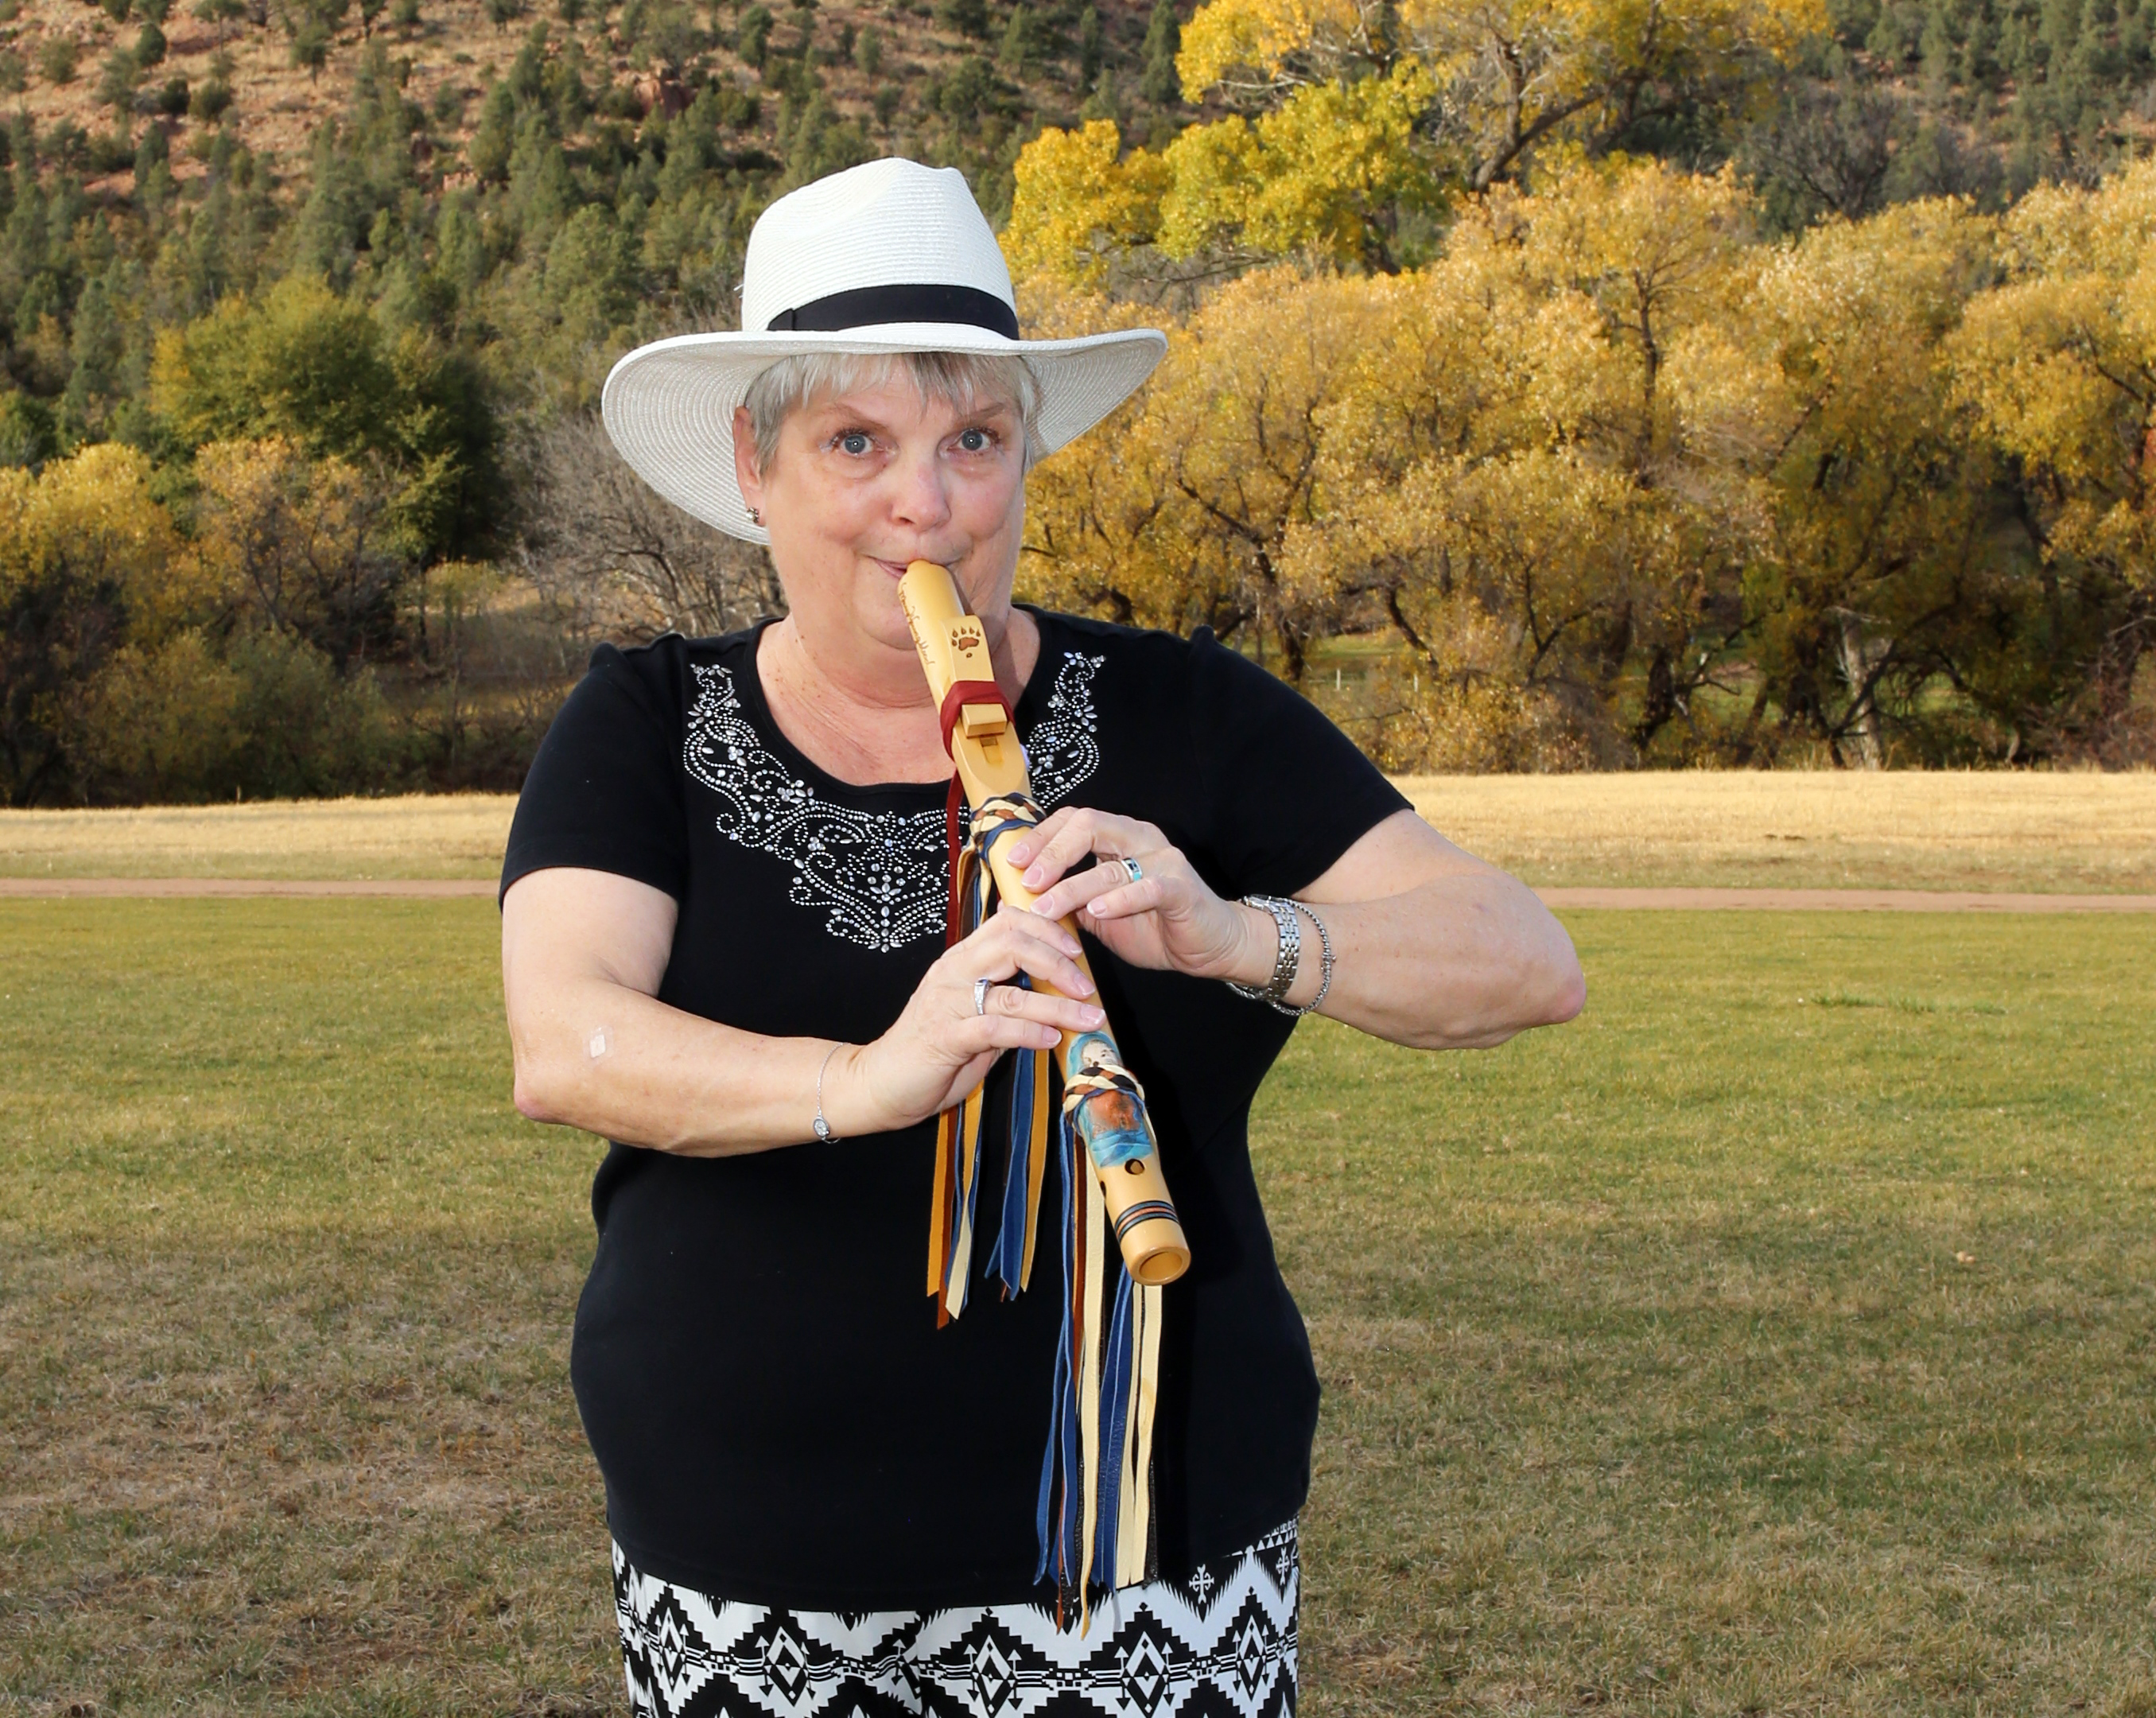 Bette at Green Valley Park